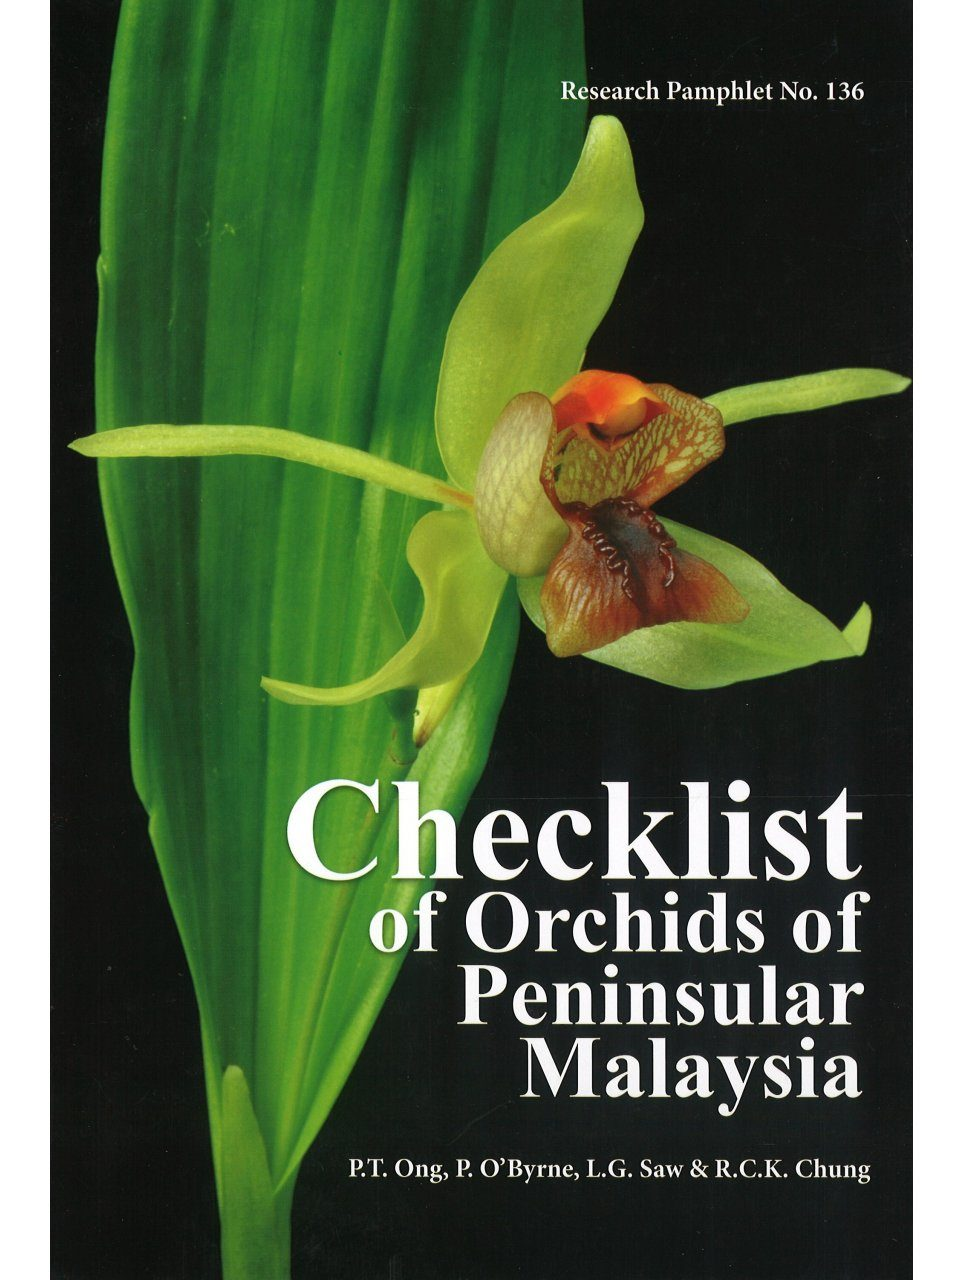 Checklist of Orchids of Peninsular Malaysia